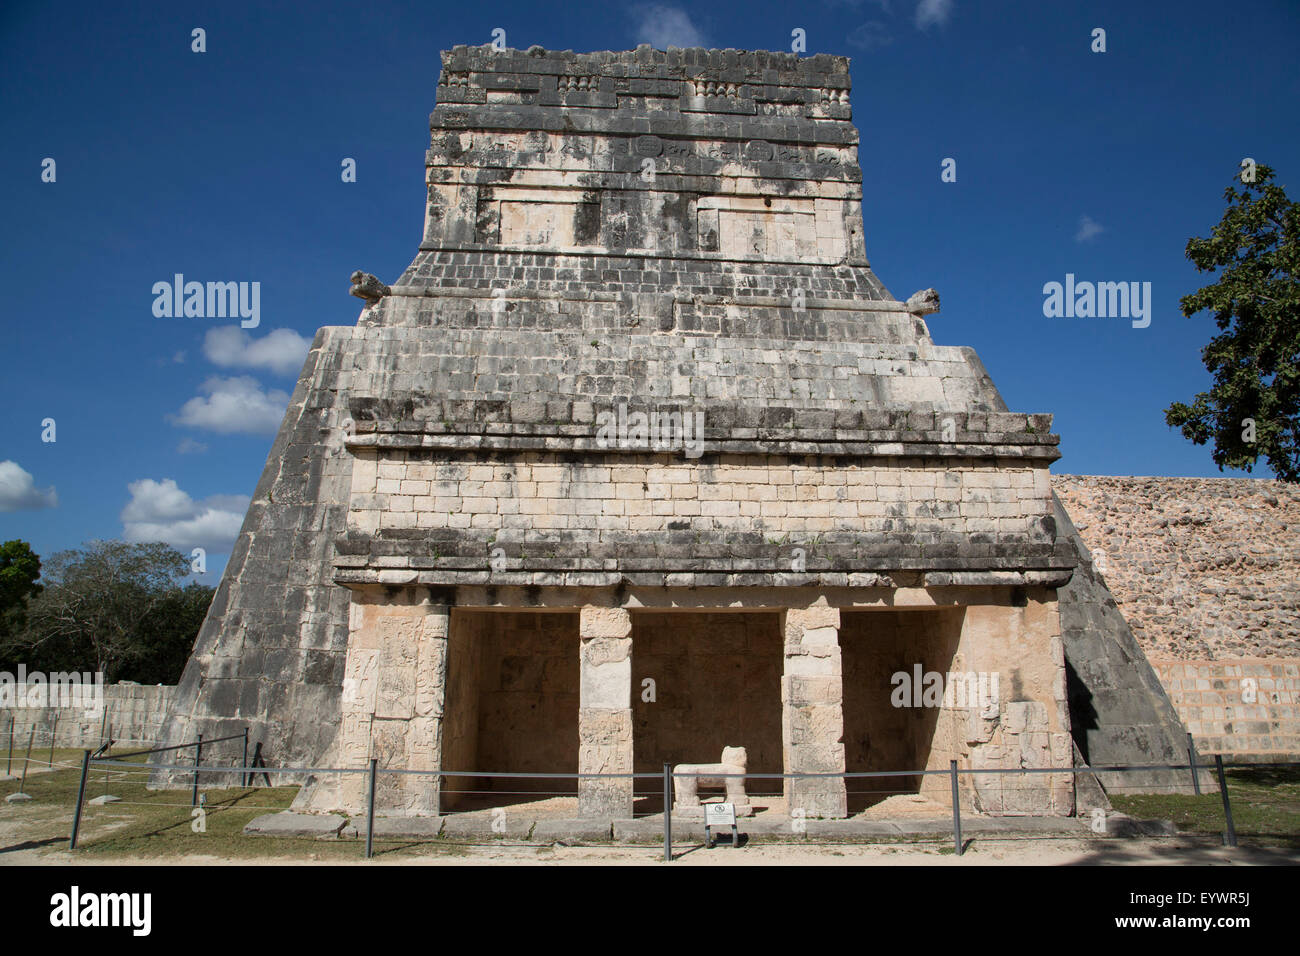 Temple of the Jaguars and Shields, Chichen Itza, UNESCO World Heritage Site, Yucatan, Mexico, North America - Stock Image